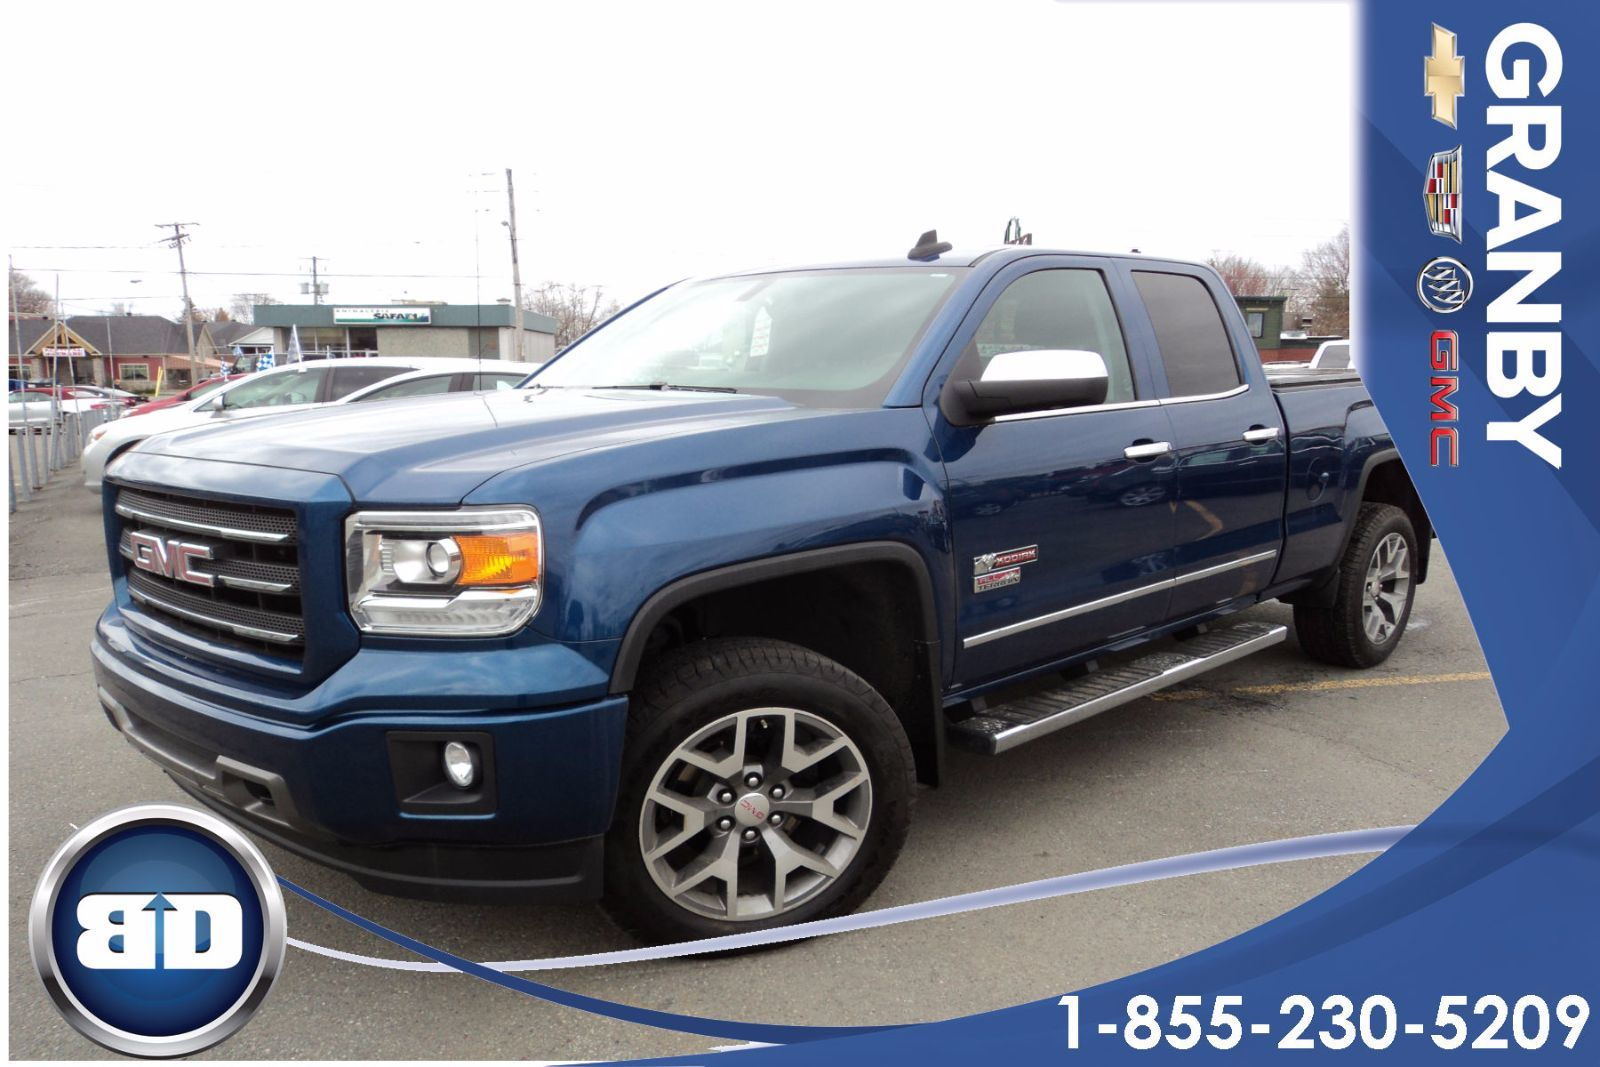 new 2015 gmc k1500 sierra double cab sle std box 3sa all terrain double cab for sale in granby. Black Bedroom Furniture Sets. Home Design Ideas